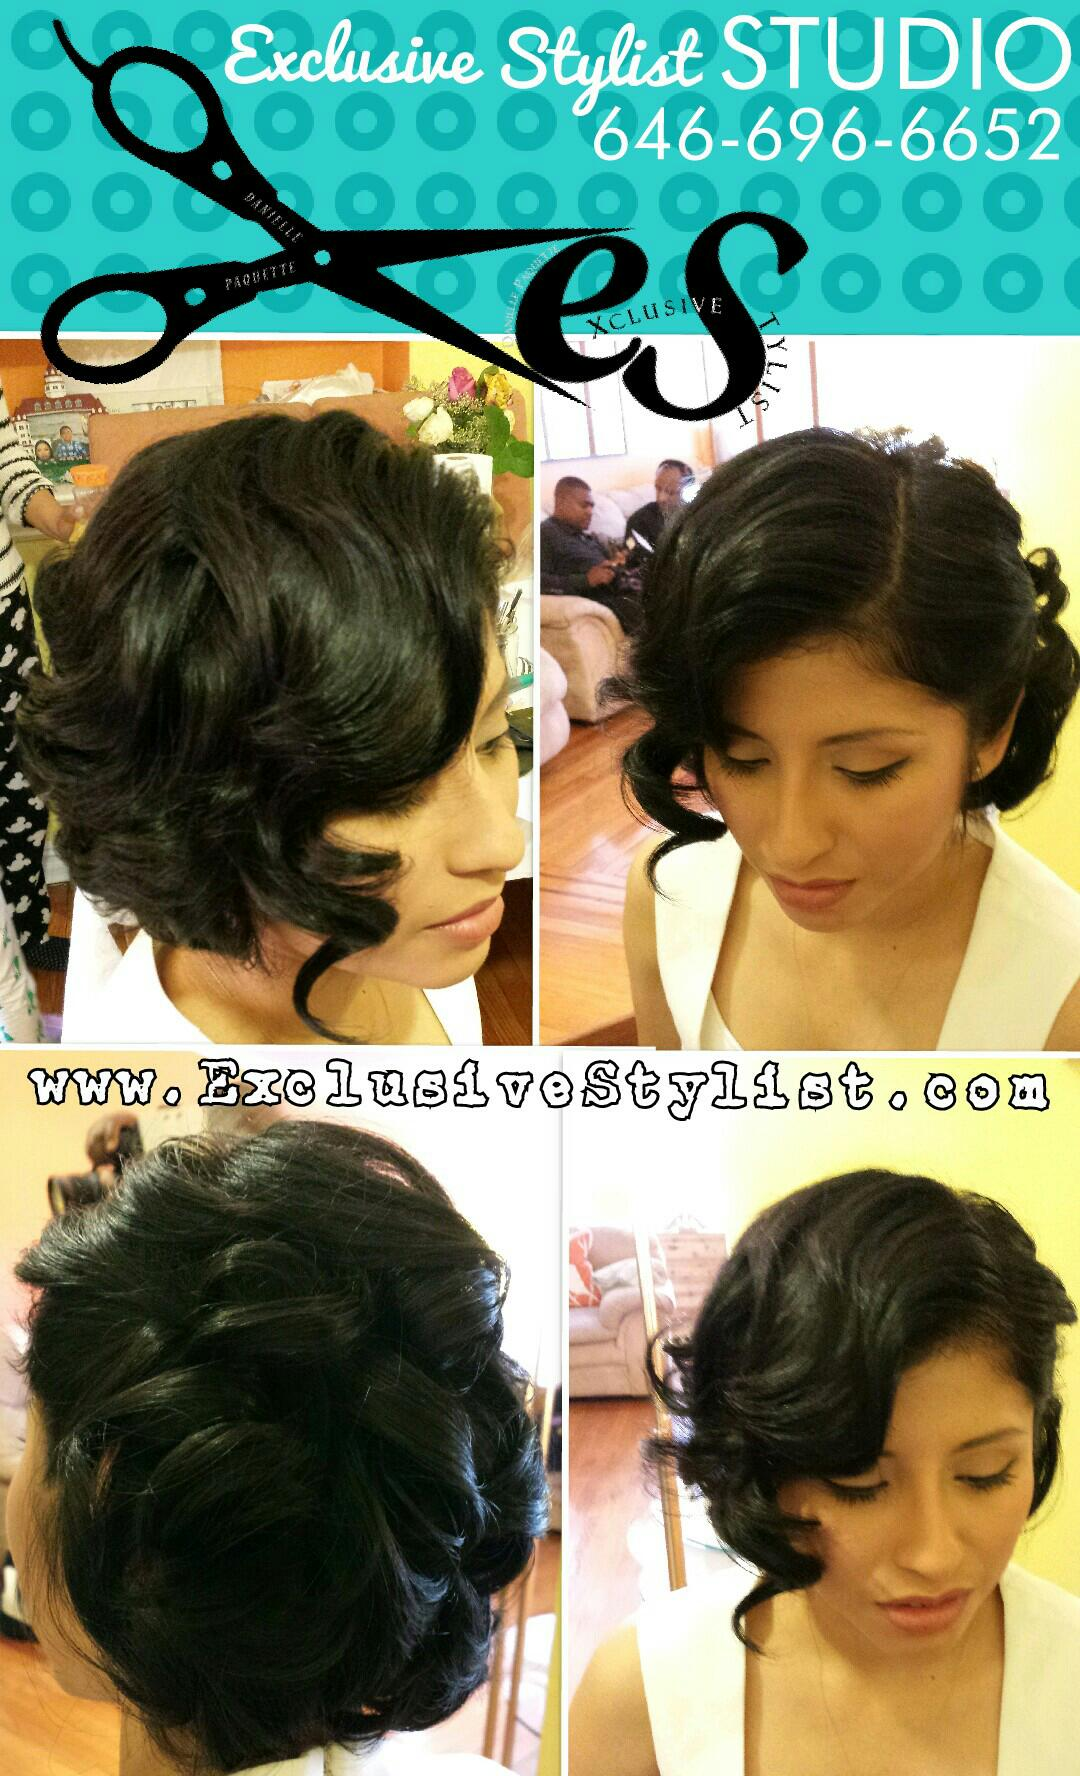 Bridal Party Short Hair updo